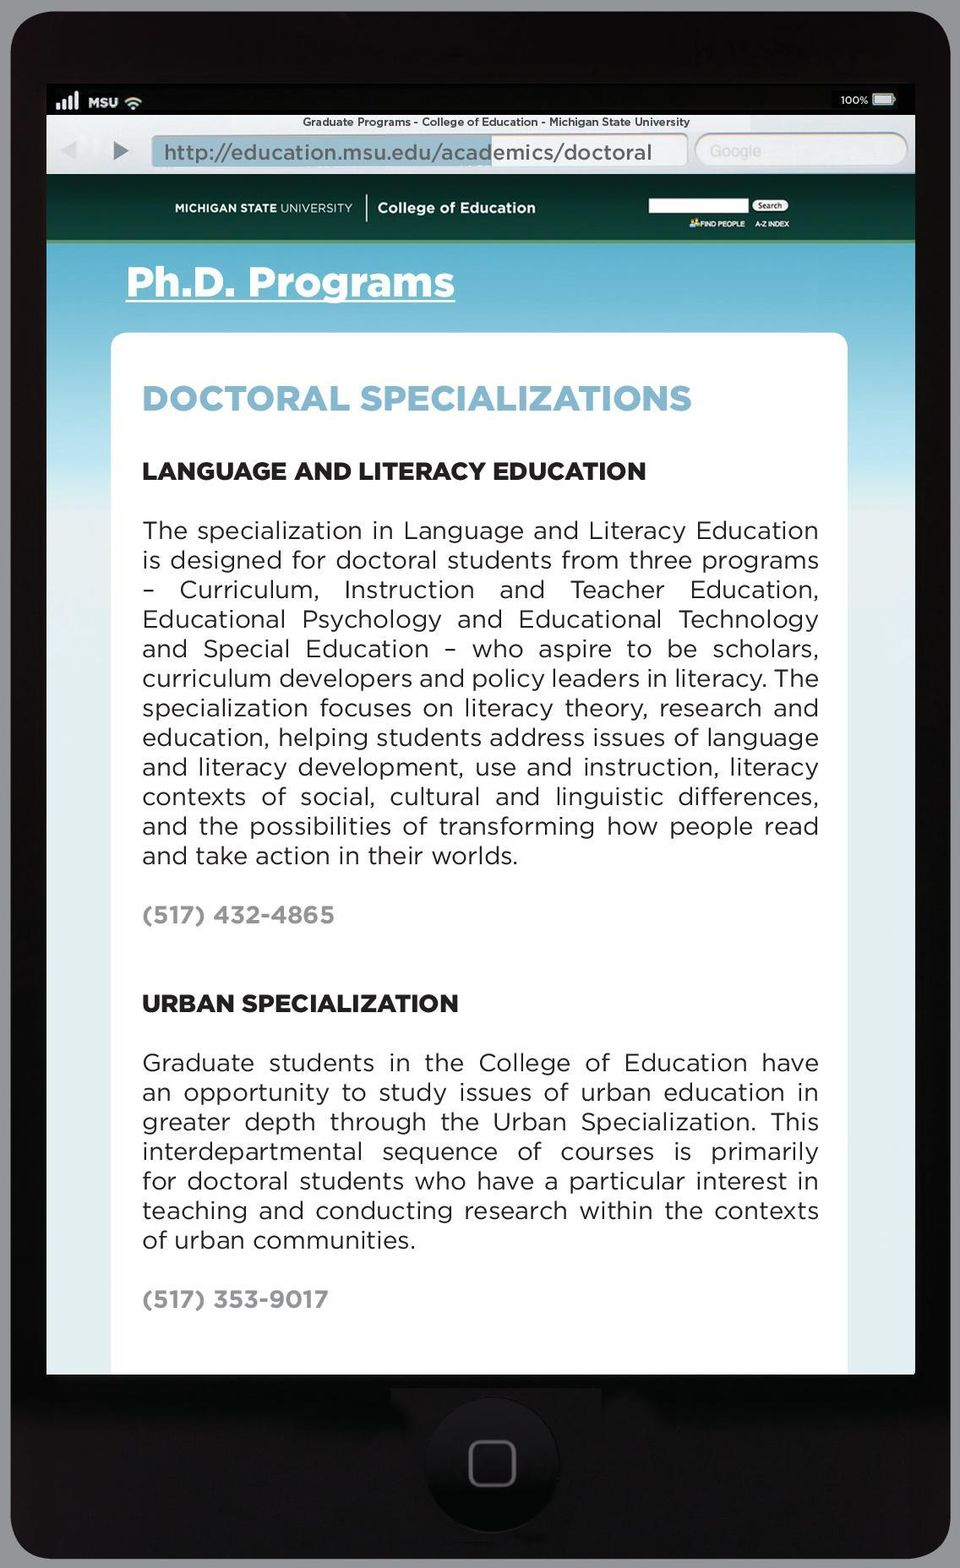 and Teacher Education, Educational Psychology and Educational Technology and Special Education who aspire to be scholars, curriculum developers and policy leaders in literacy.